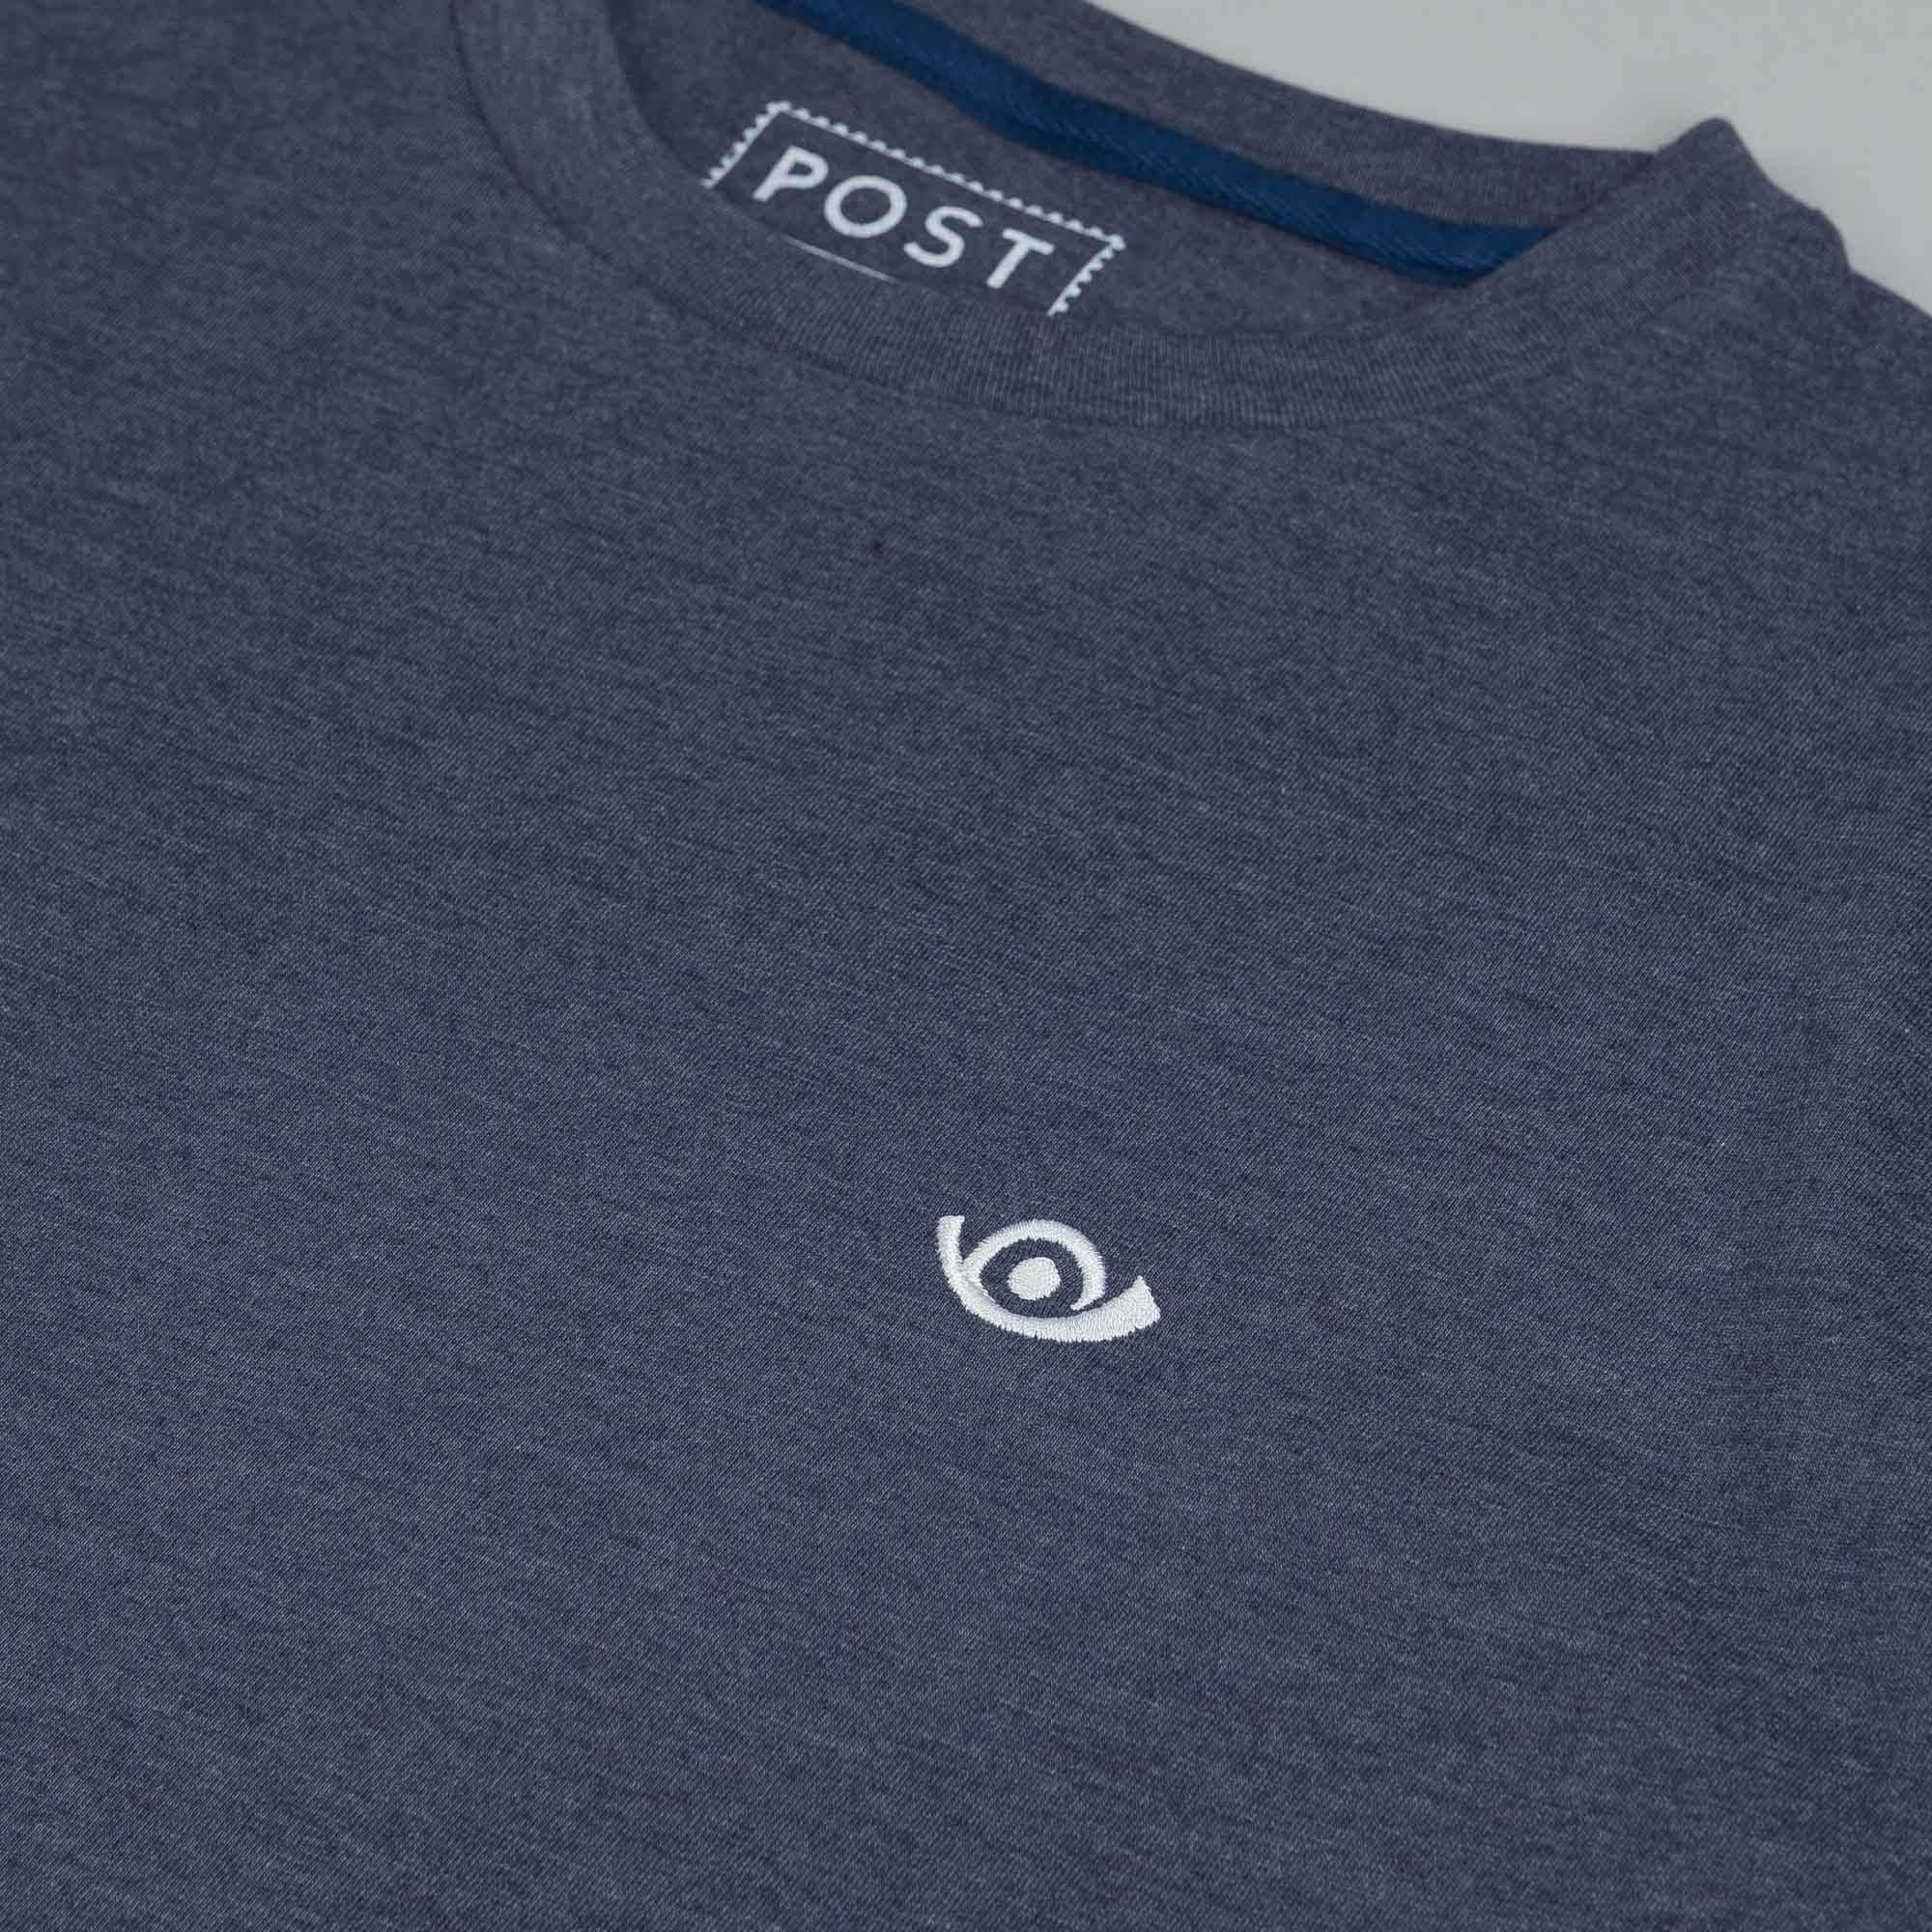 Post 90s T-Shirt Heather Blue